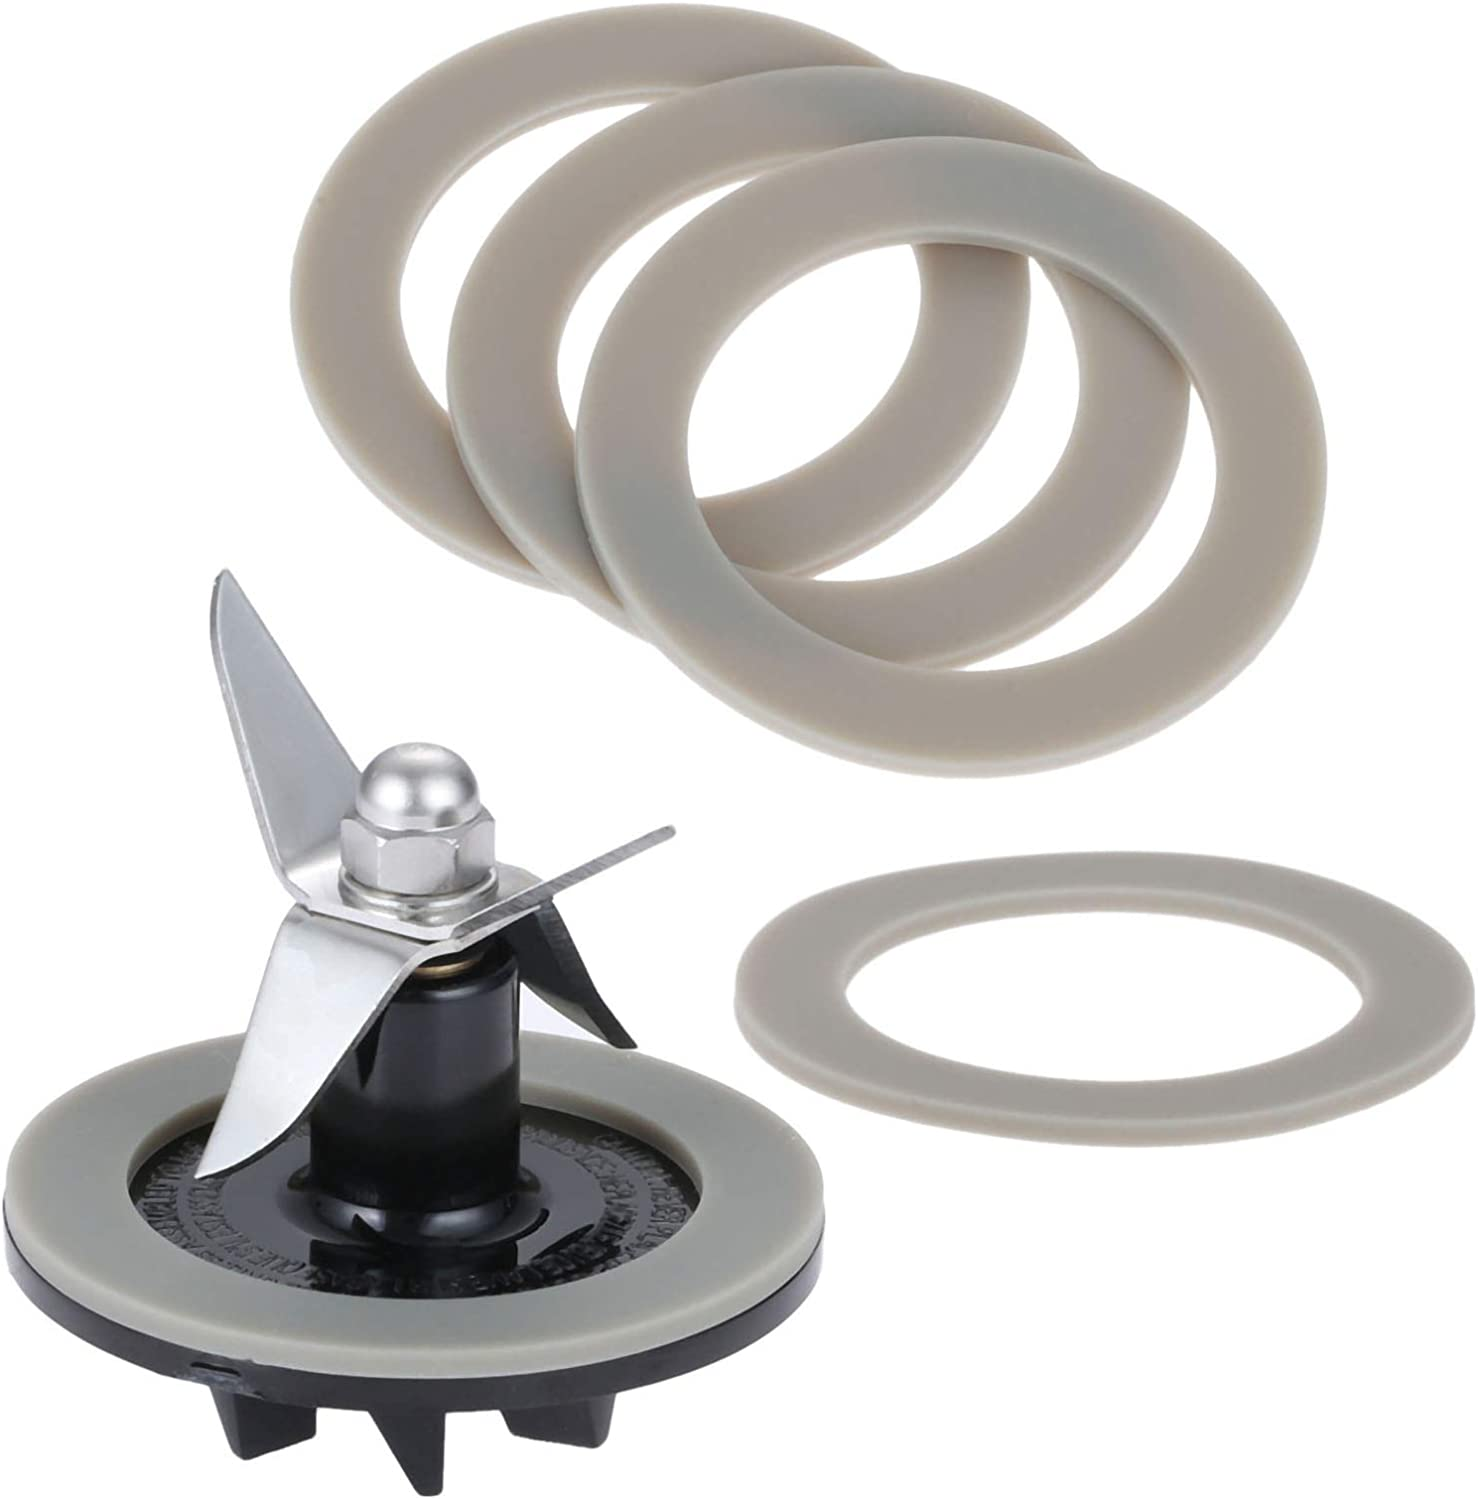 Blade Cutting Cutter SPB-456-2 with 5 Gasket Rubber Sealing Seal O-ring, Replacement for Cuisinart Blenders # BFP703 BFP-703 BFP703B BFP-703CH SPB7 SPB-7BK CB8 CB9 BFP-703